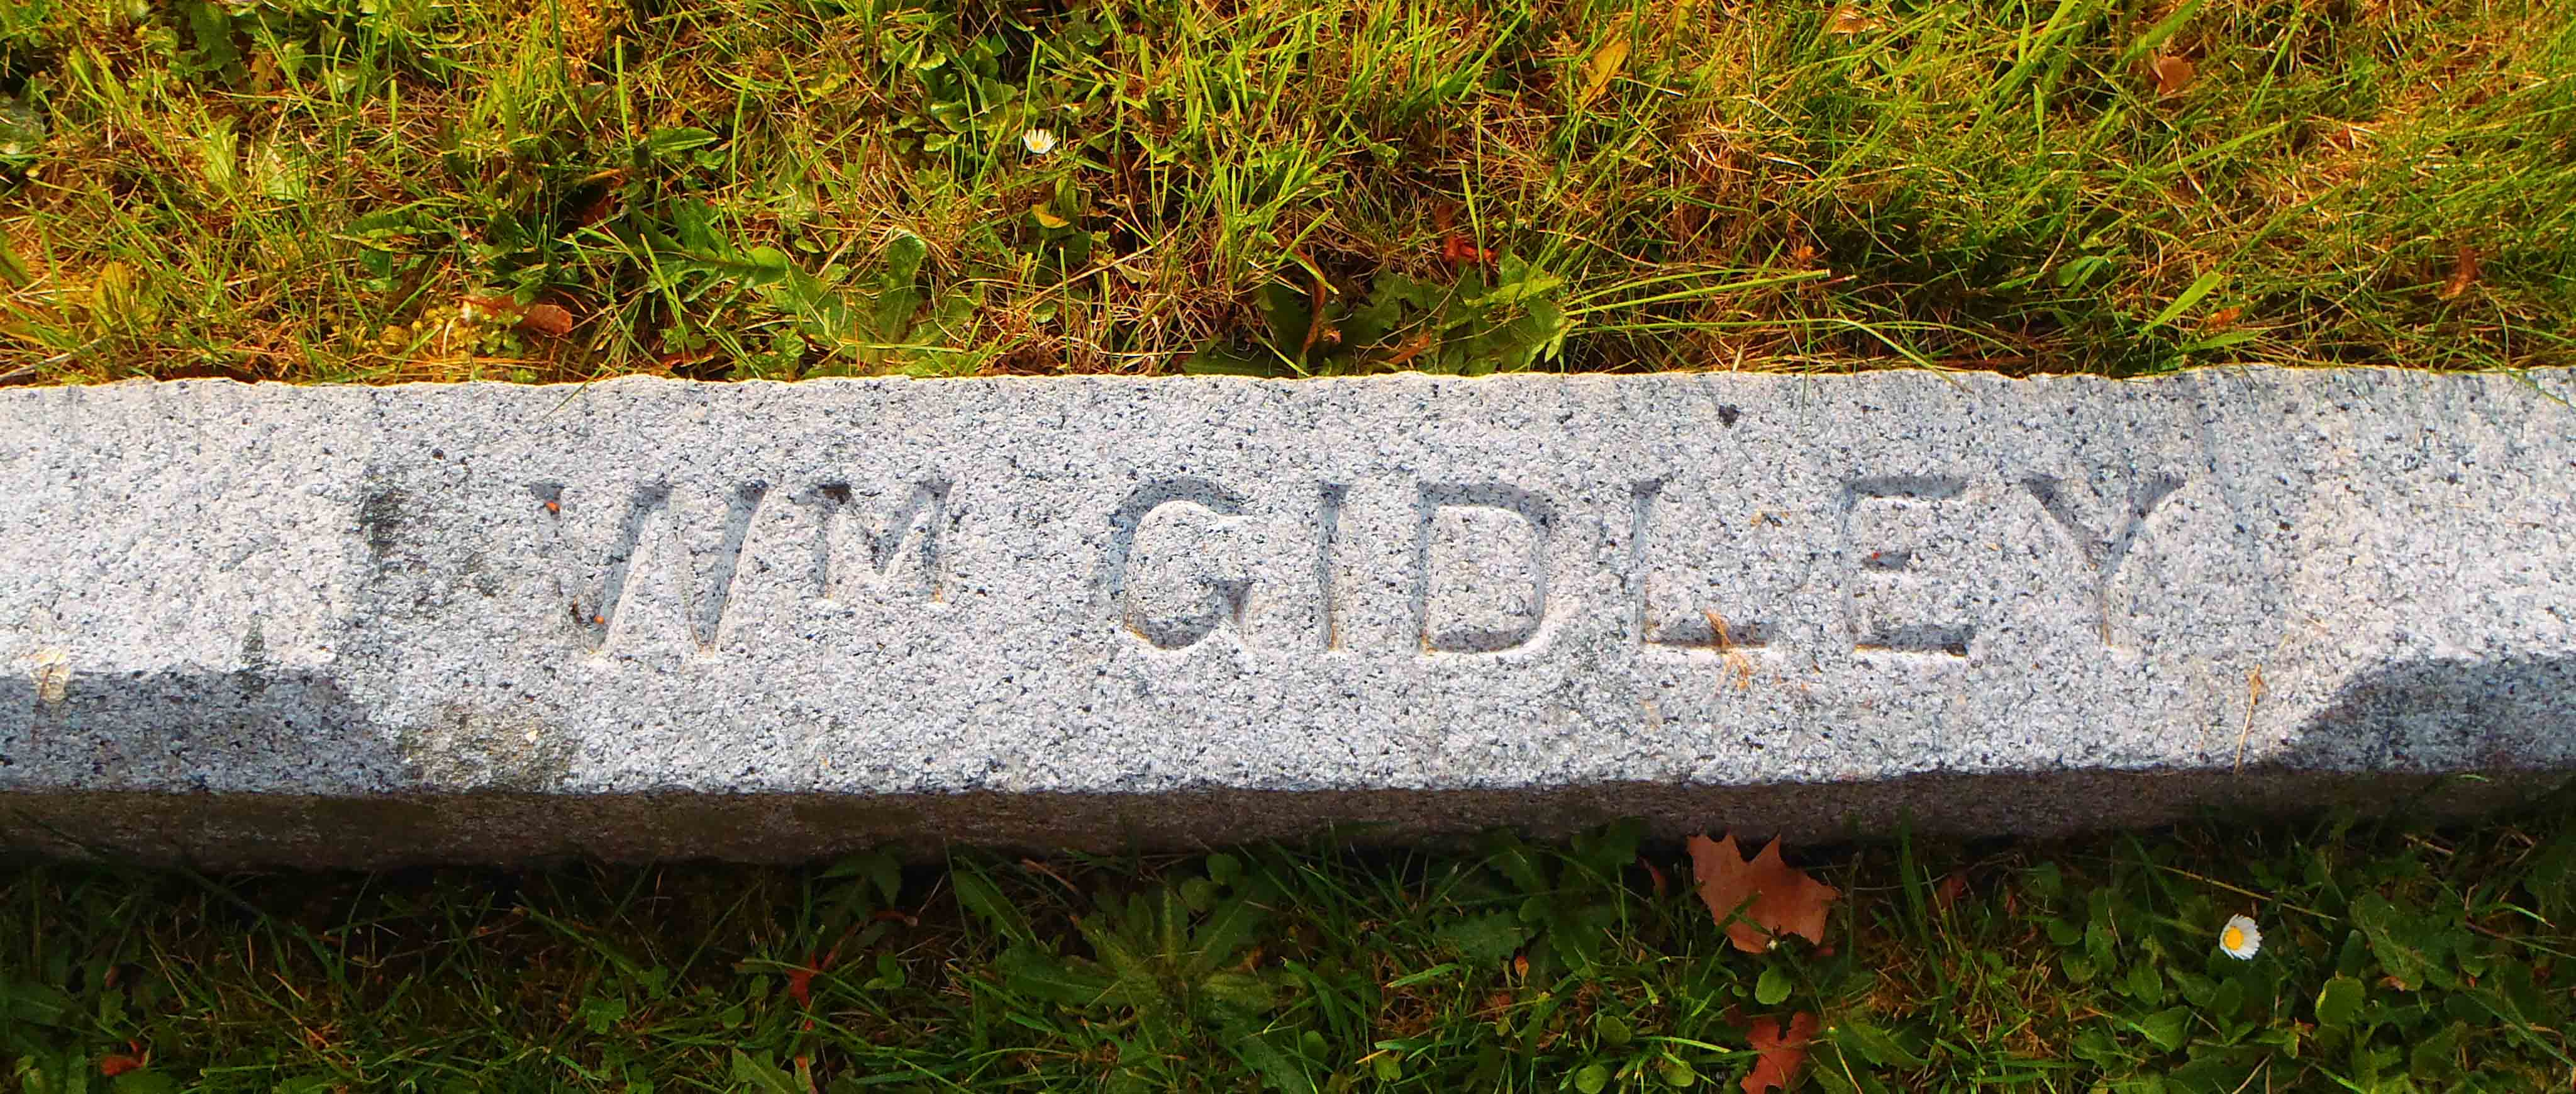 William Gidley tomb inscription